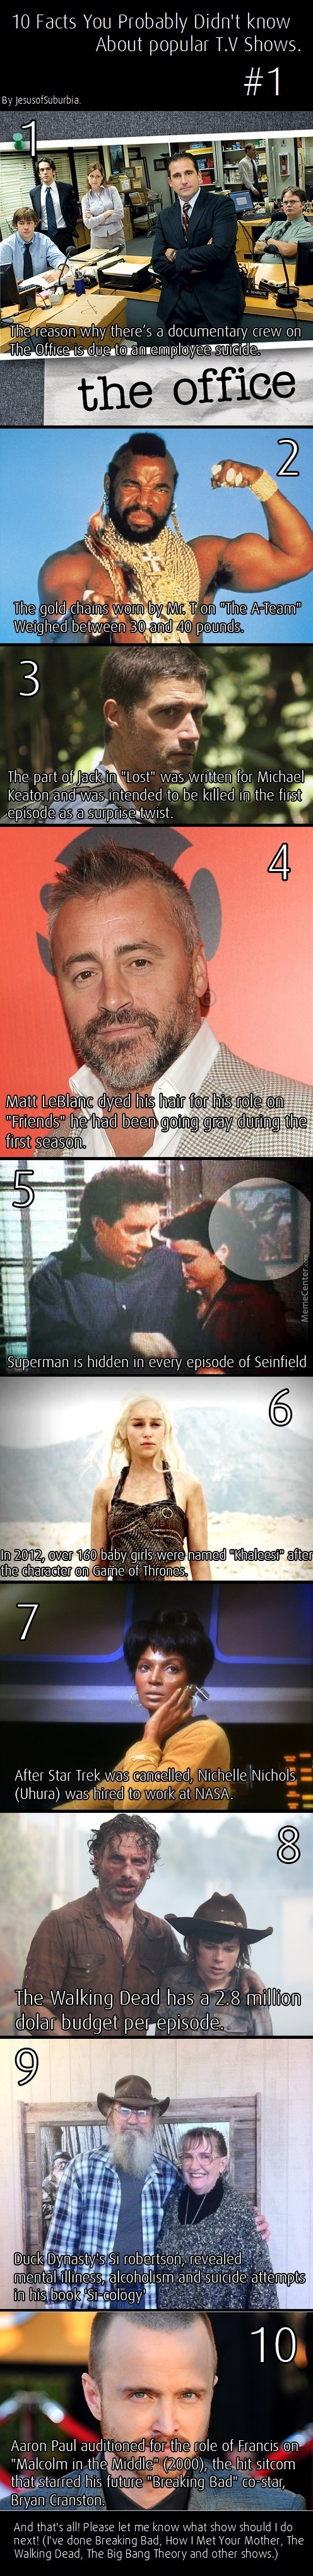 10 Facts About Popular T,v Shows